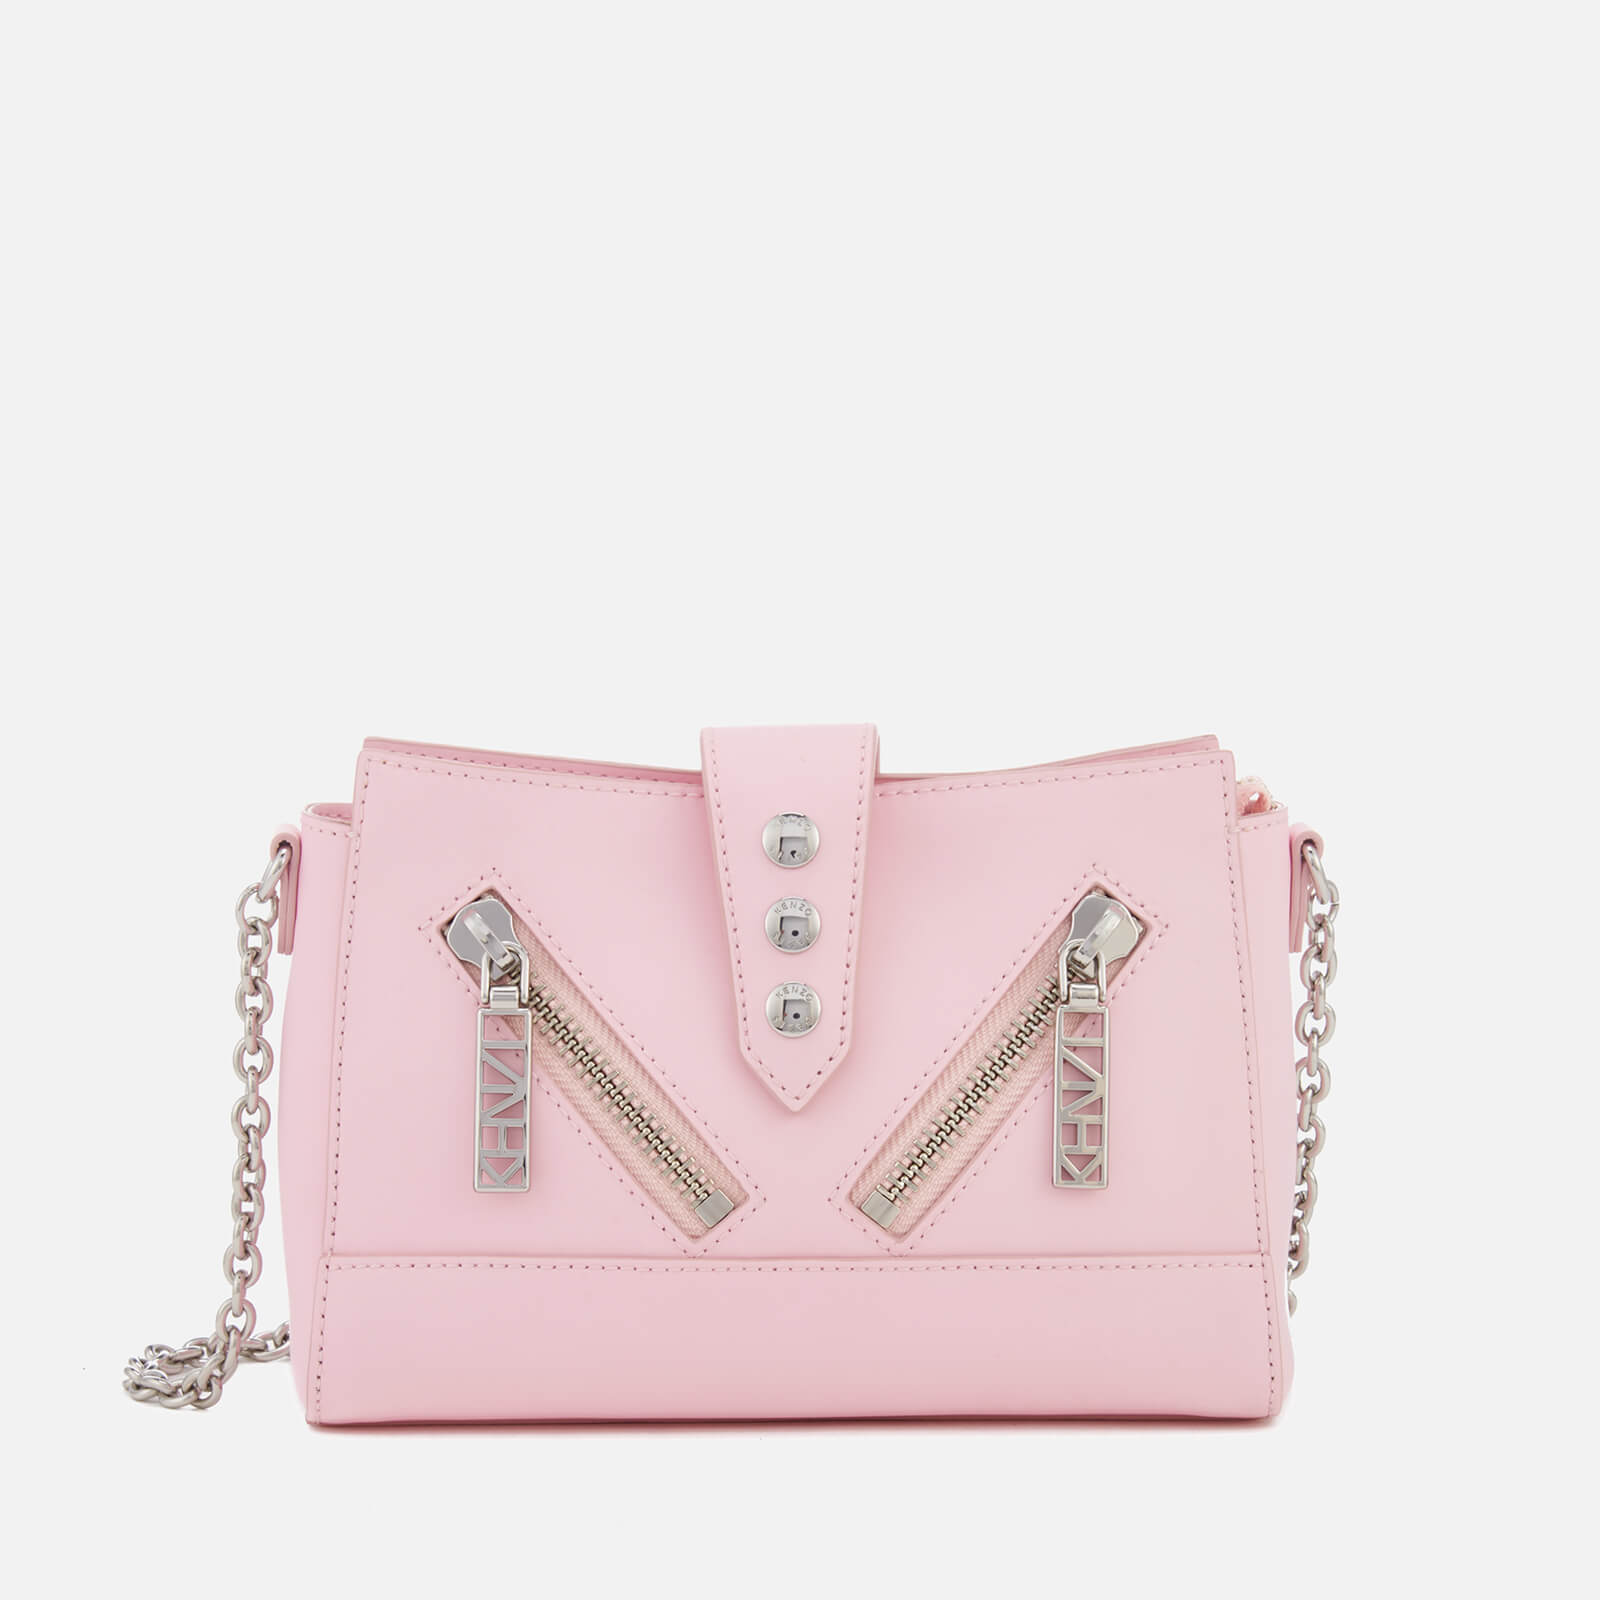 fd5a430e67a KENZO Women's Kalifornia Mini Shoulder Bag - Faded Pink - Free UK Delivery  over £50